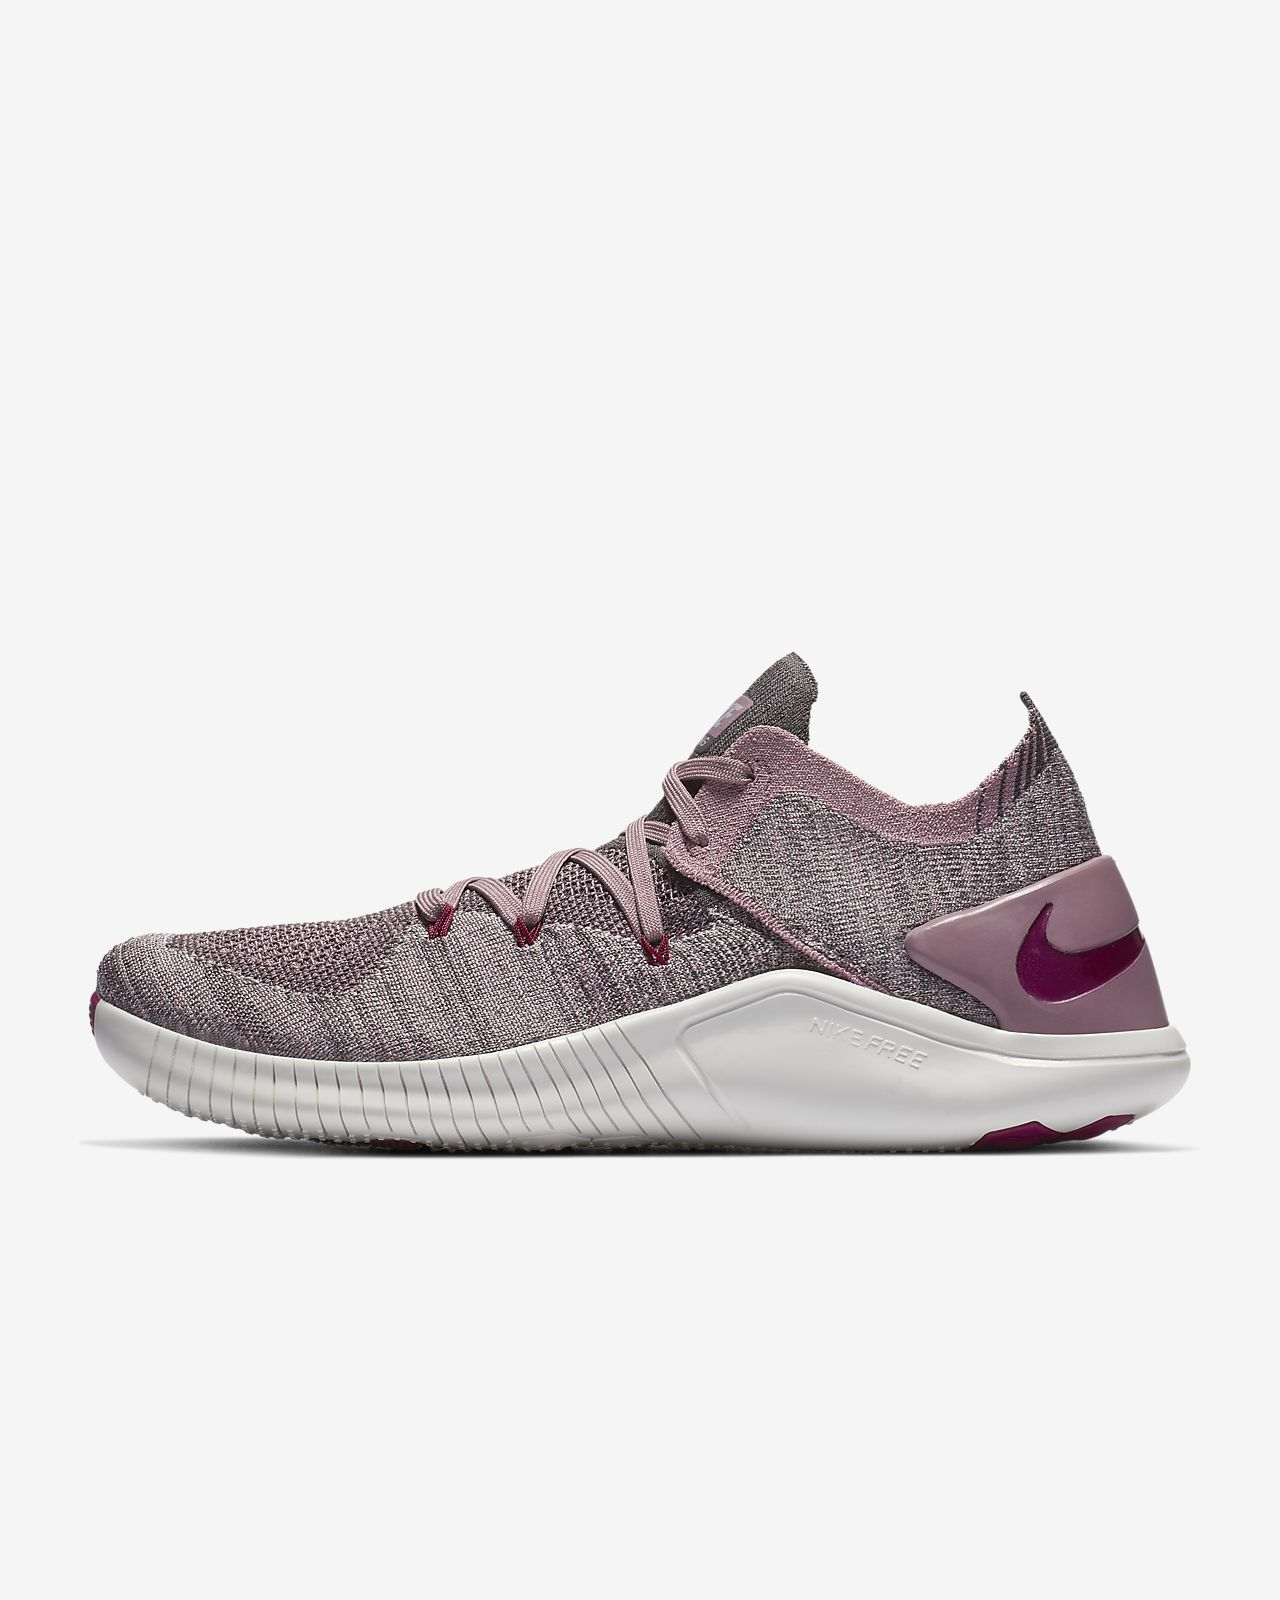 Nike De Tr Chaussure Free Flyknit Cross Fitness Et Training 3 Hiit Rq6TP